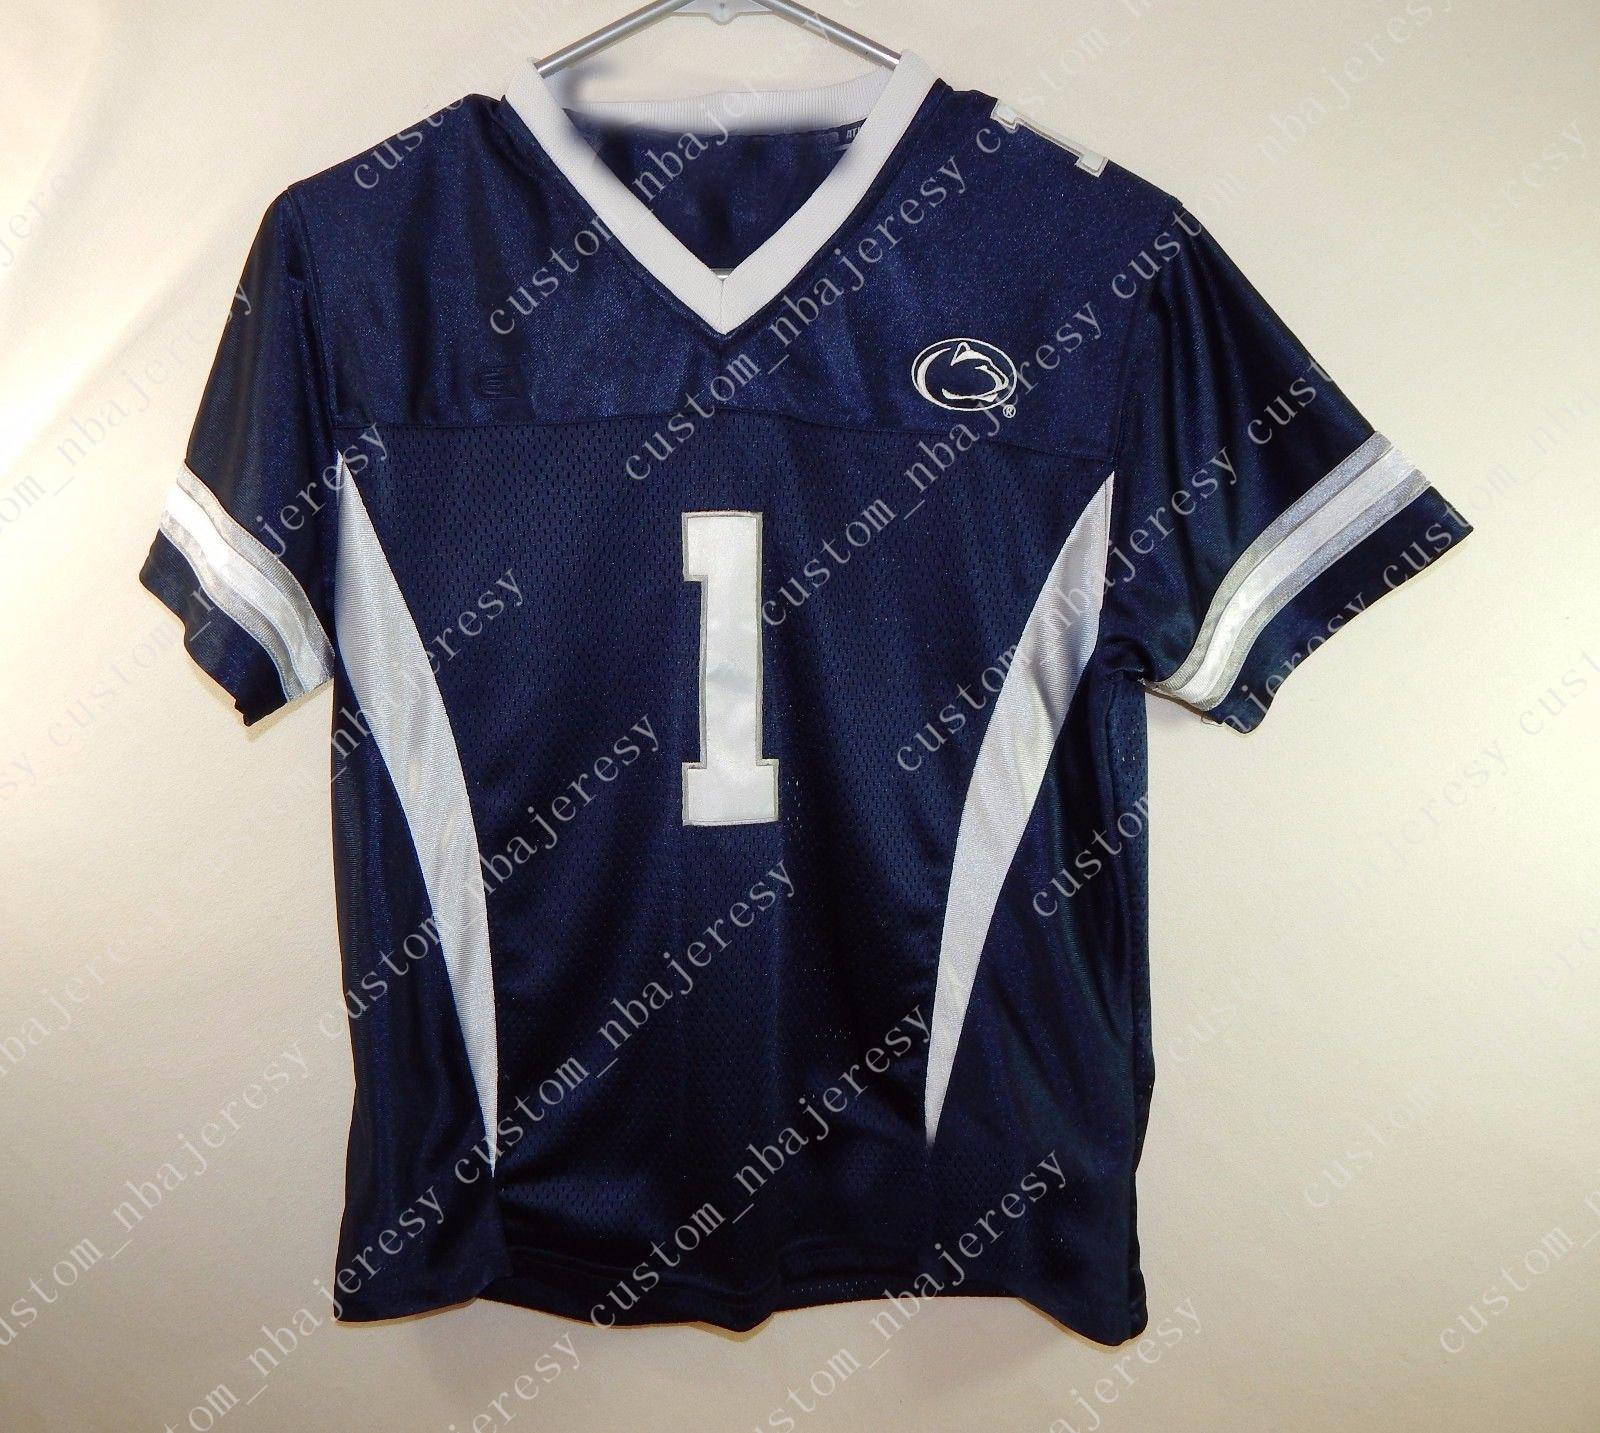 b7d38cf53 2019 Cheap Custom Penn State #1 Nittany Lions NCAA College Football Jersey  Customized Any Name Number Stitched Jersey XS 5XL From Custom_nbajersey, ...